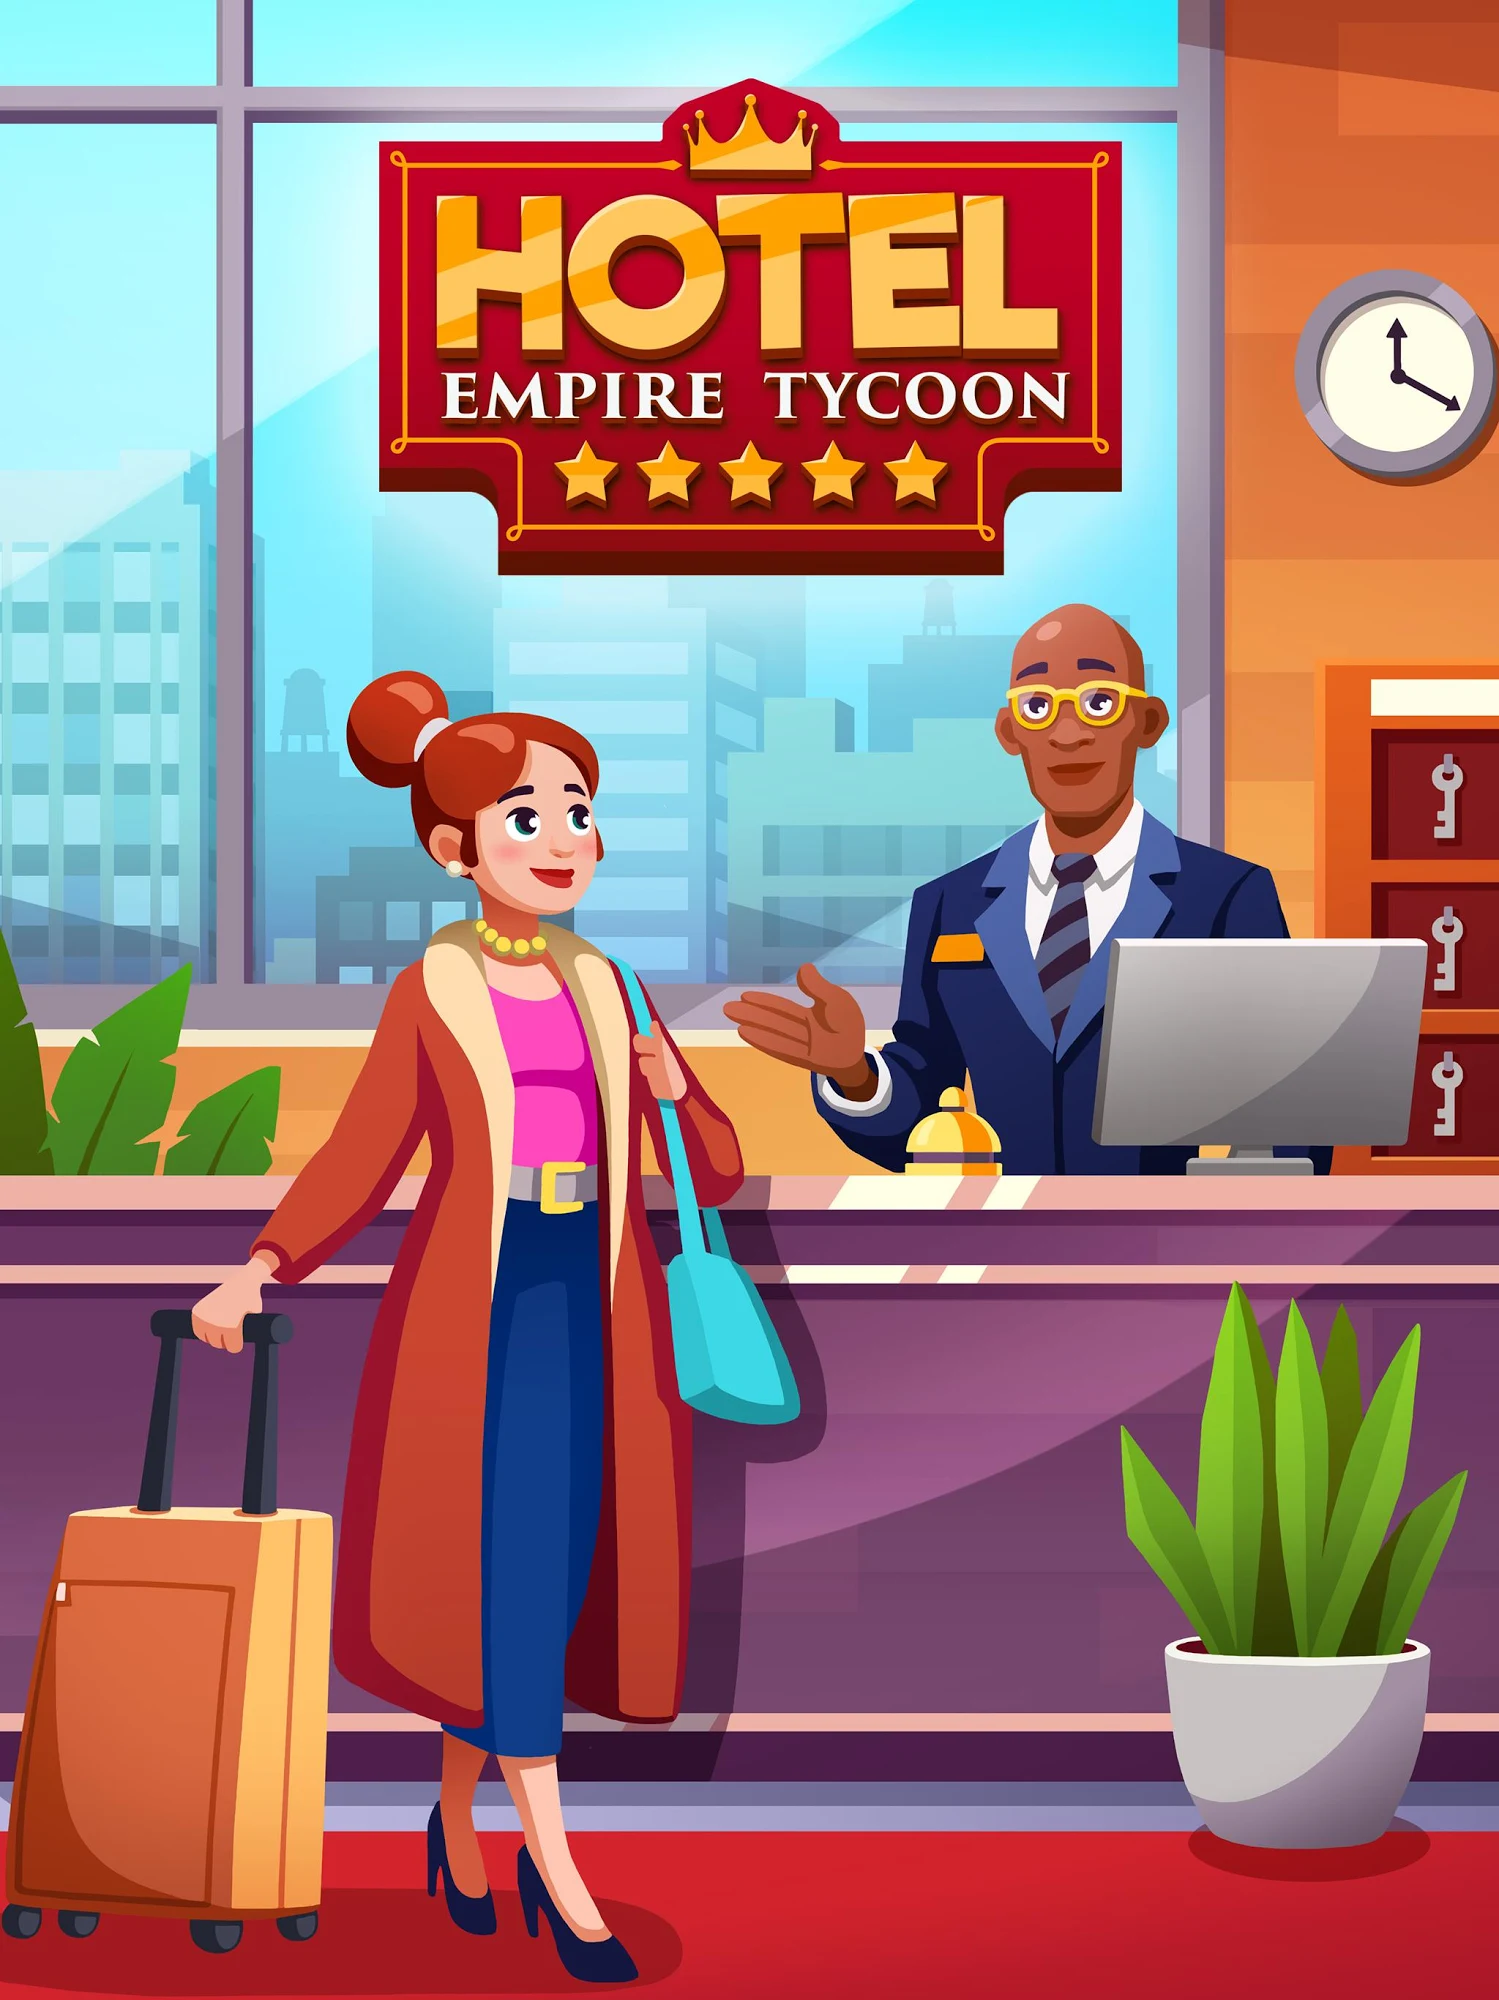 Hotel Empire Tycoon - Idle Game Manager Simulator スクリーンショット1